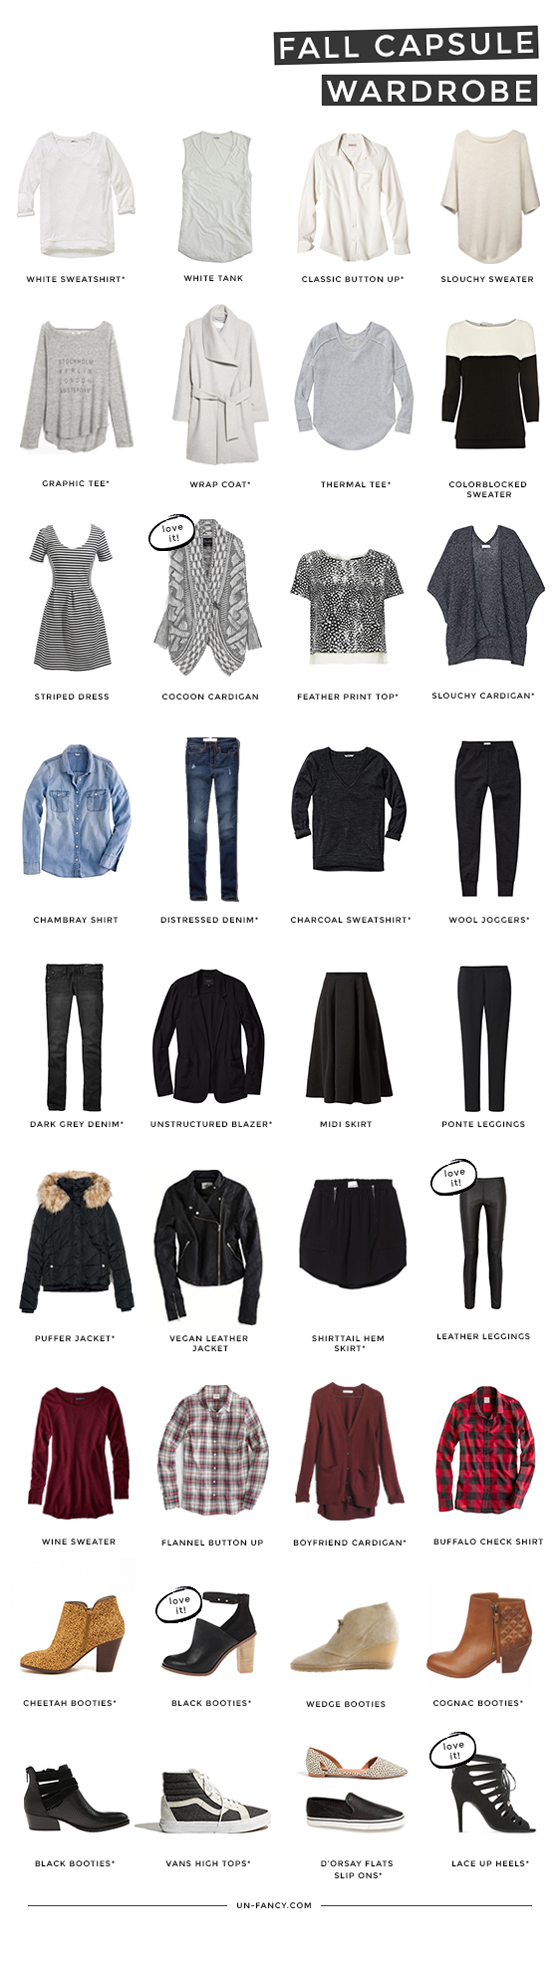 capsule-wardrobe-un-fancy-imaginacao-fertil